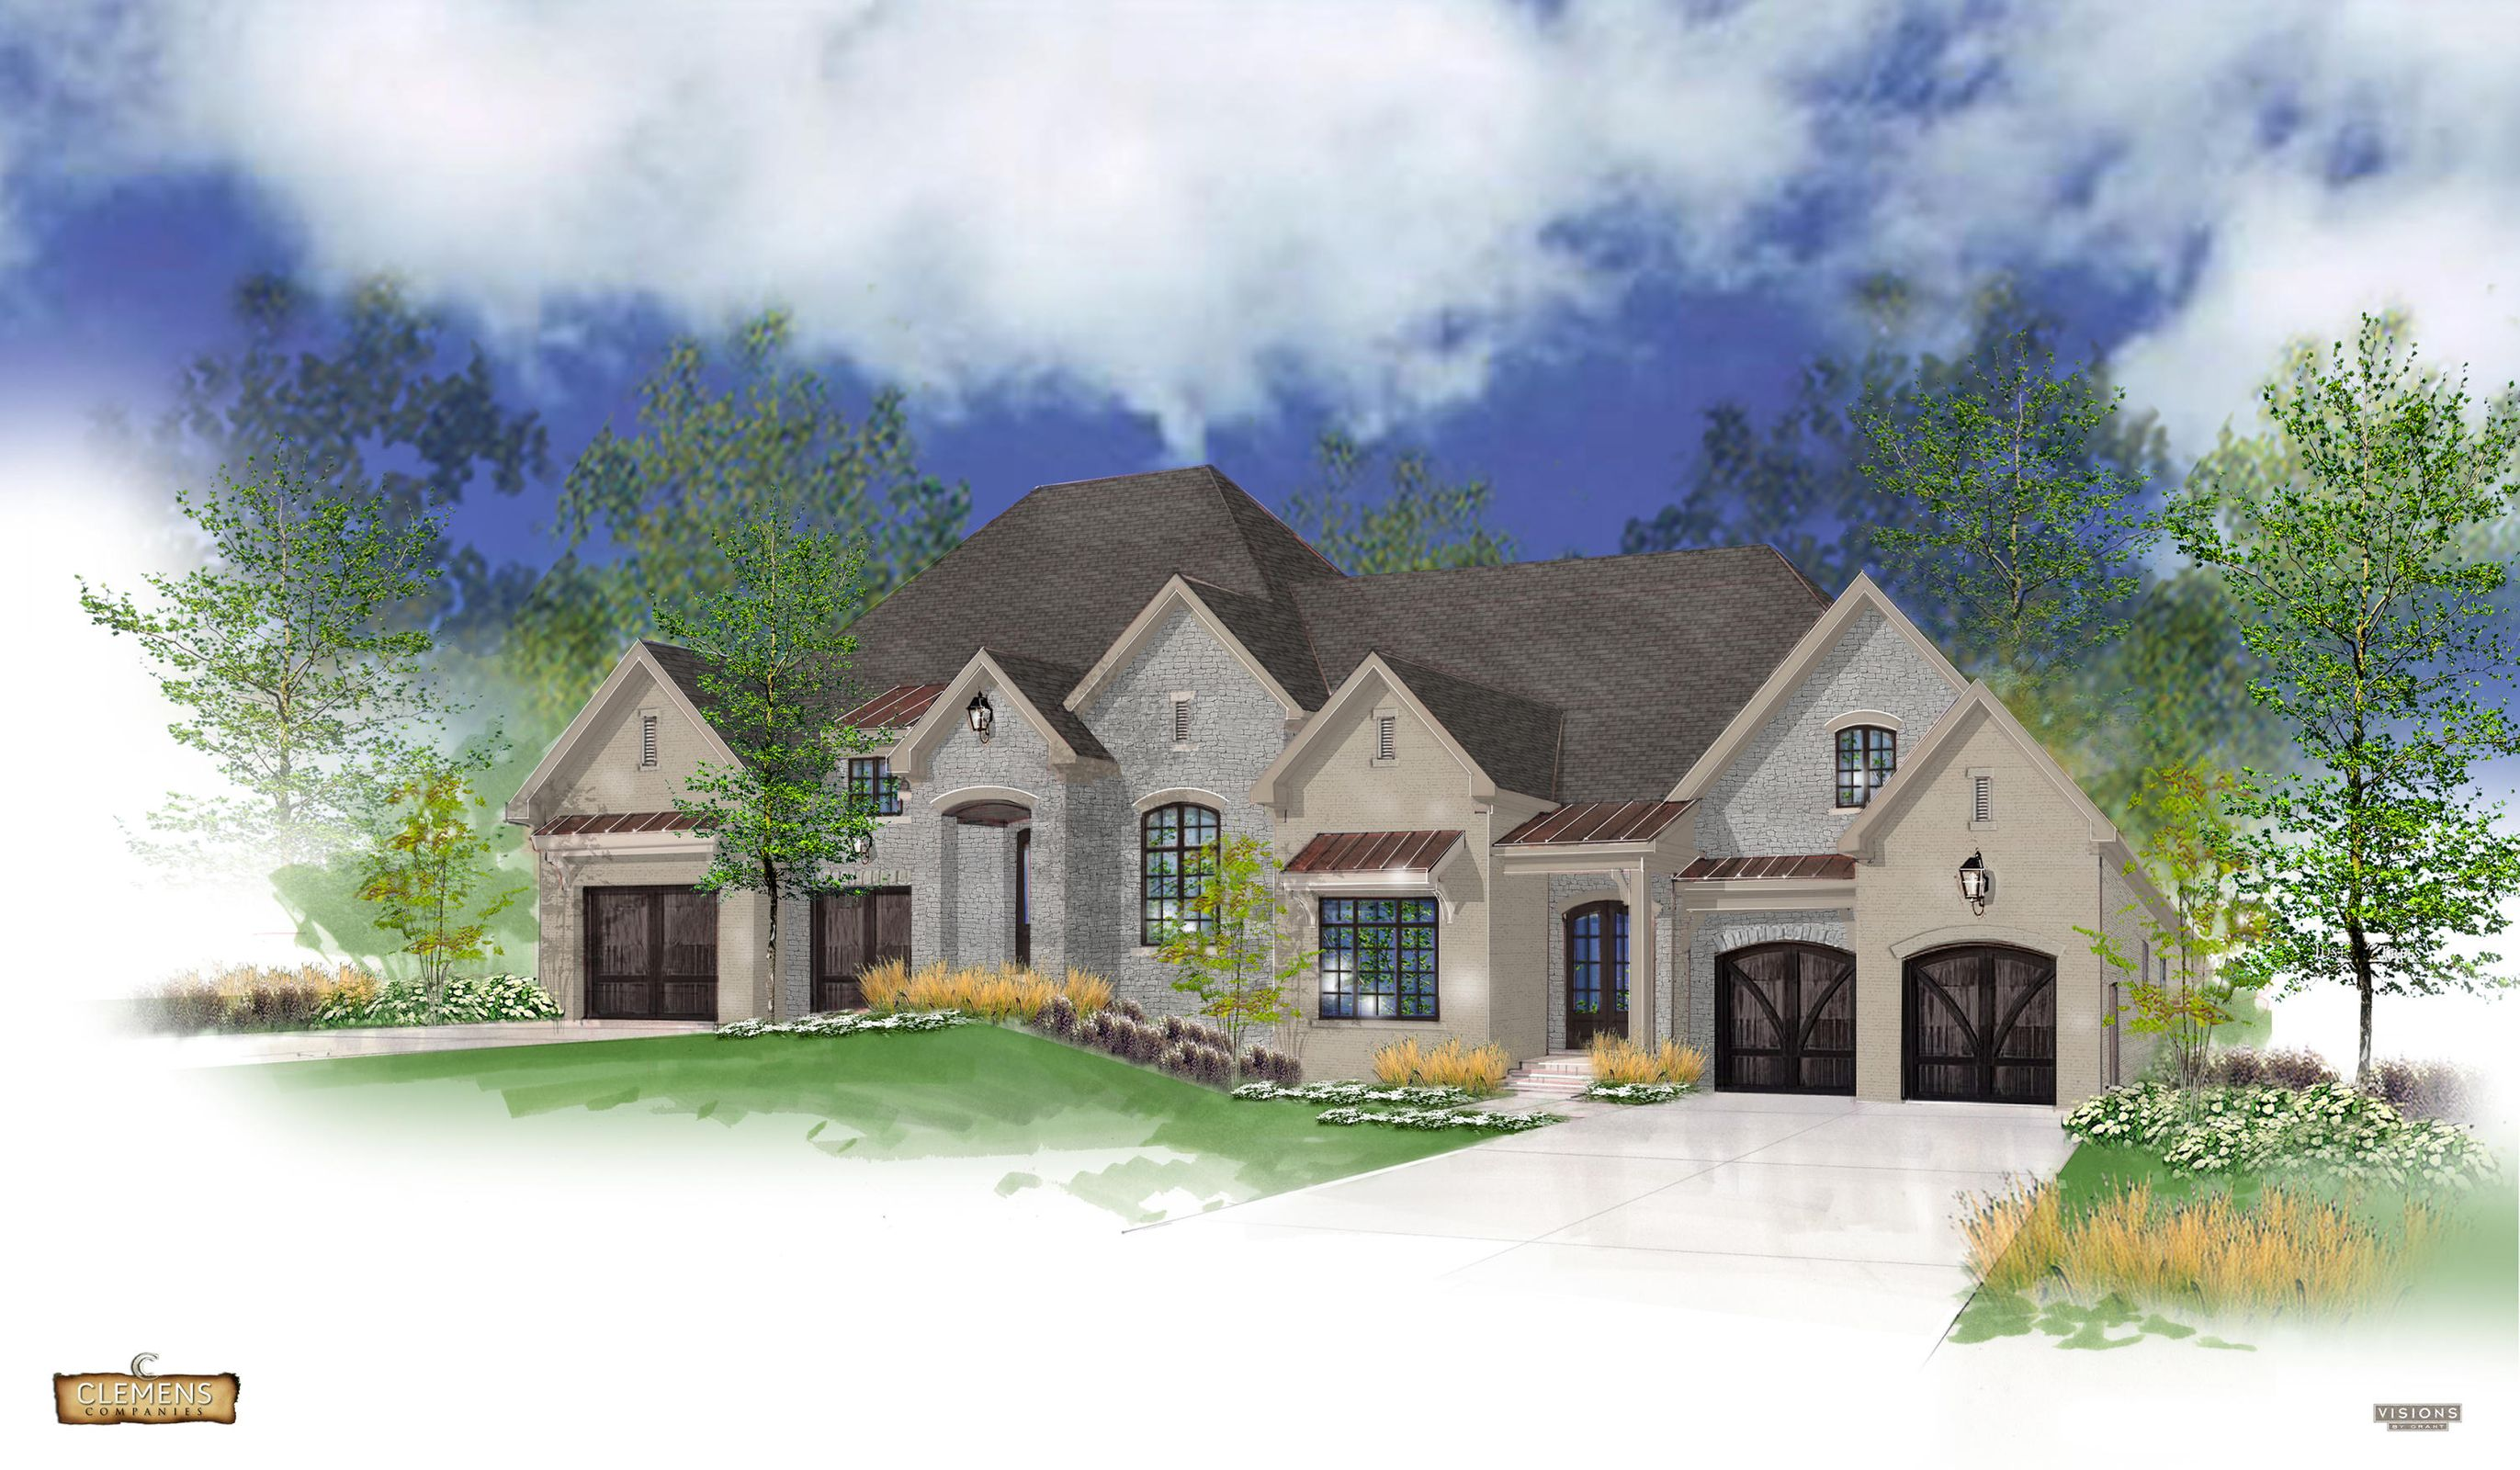 Enclave Ranch Rendering